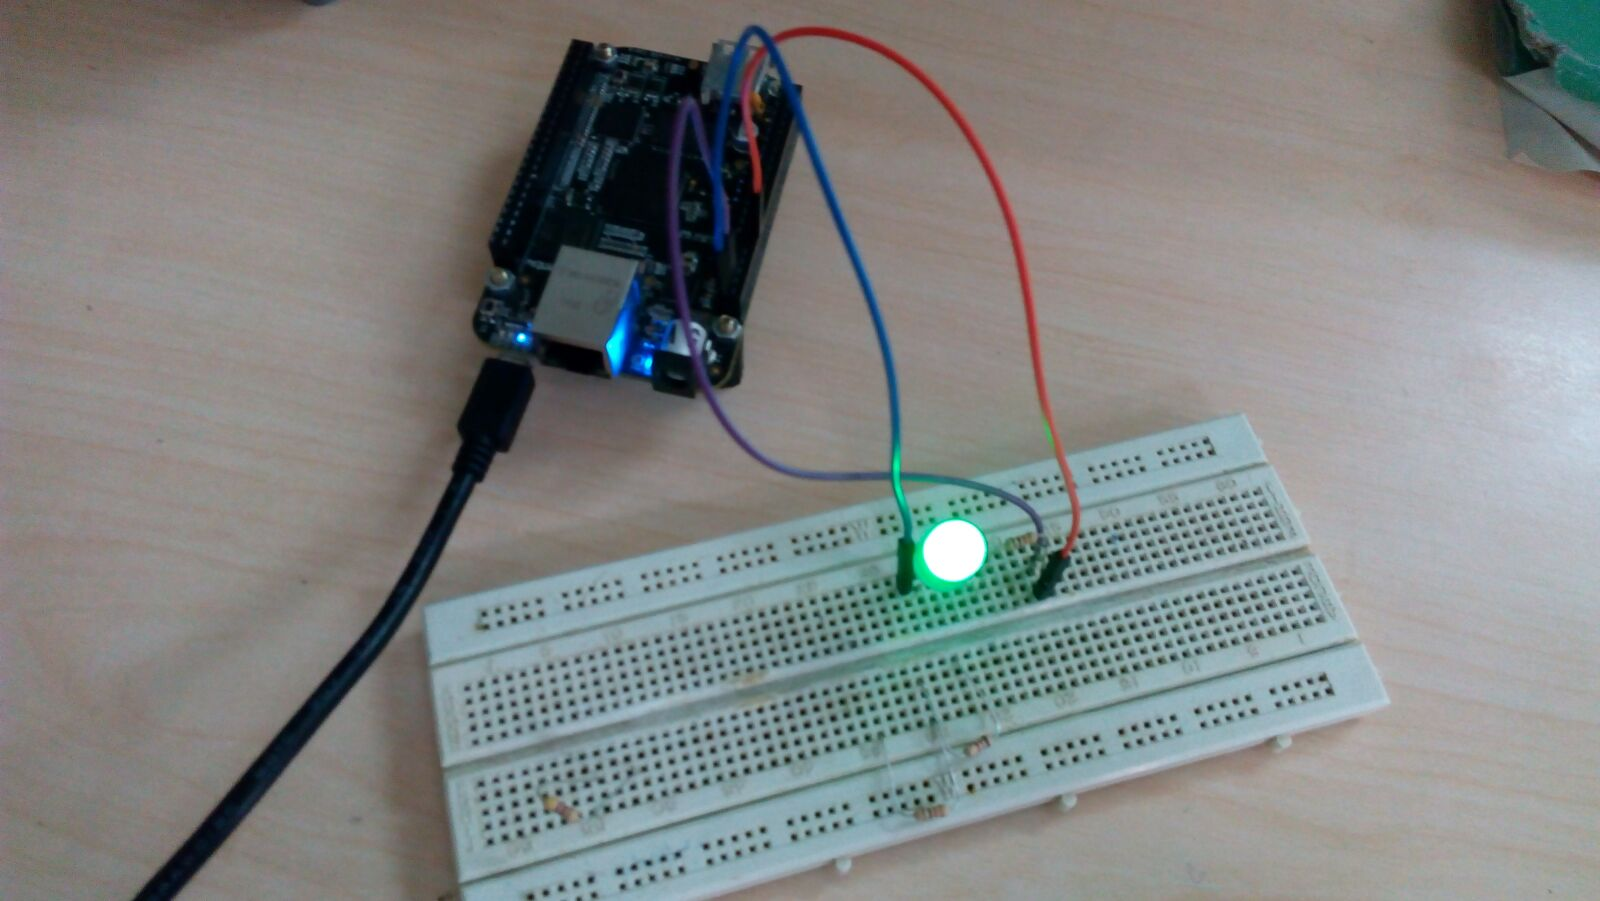 Embedded Designing How To Interface Led With Bbb Using Python Circuit Designer Hardware Setup Of Interfacing